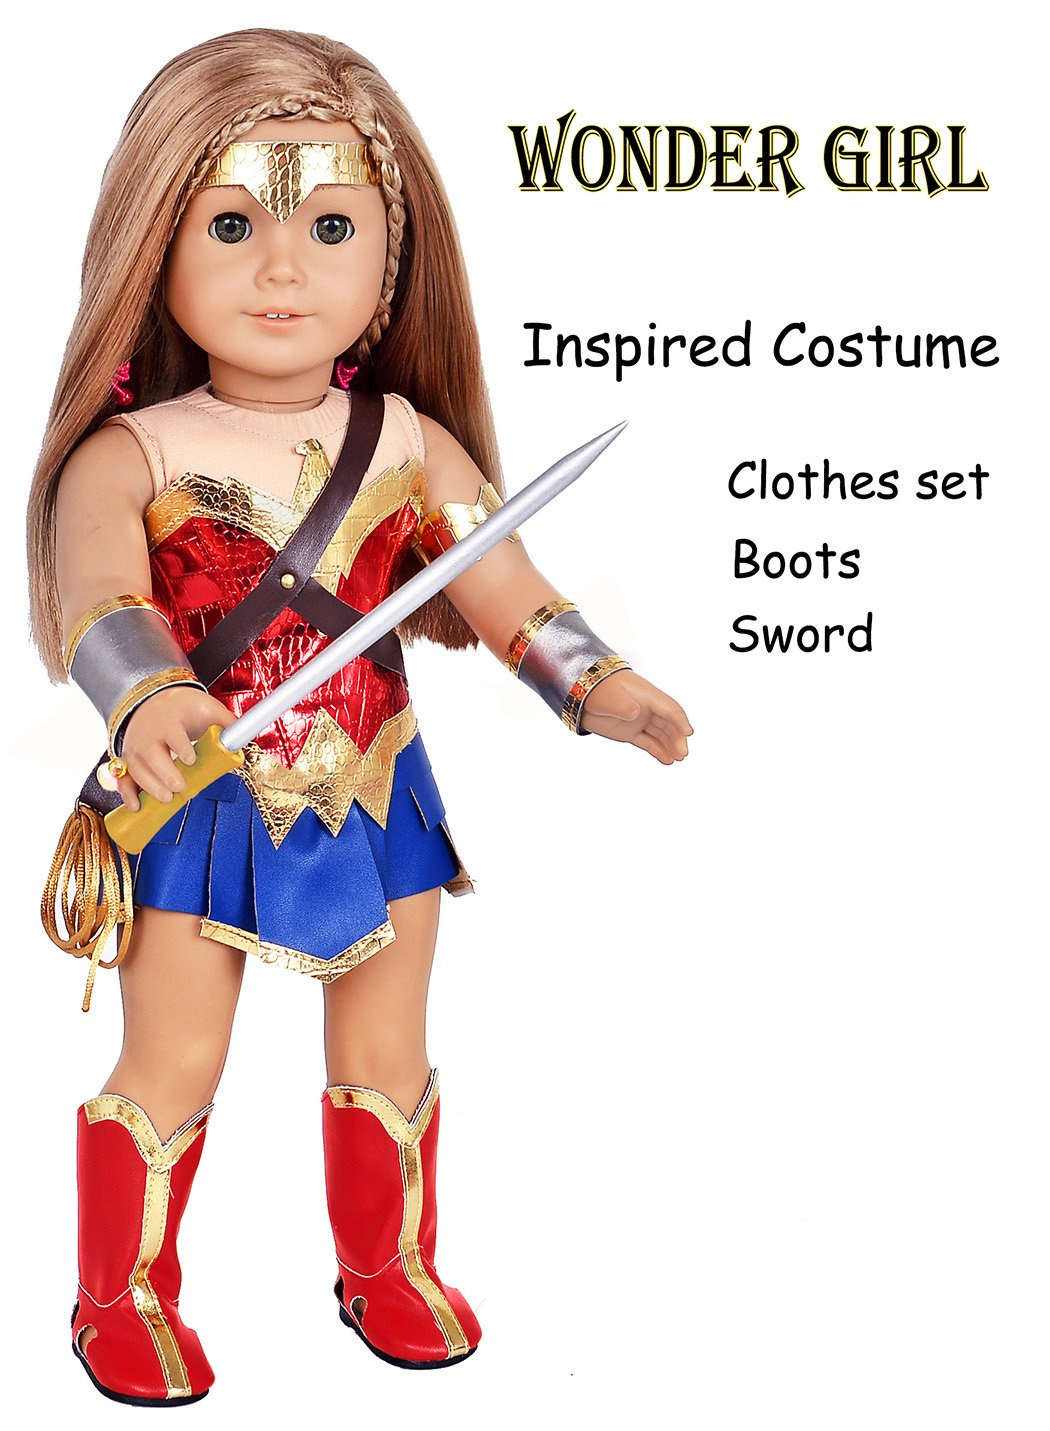 Ebuddy Wonder Girl Princess Diana Inspired Costume Leather 9pc/Set Doll Clothes Shoes Sword Fits 18 inch Dolls Includes American Girl,Journey Girl, Our generation etc